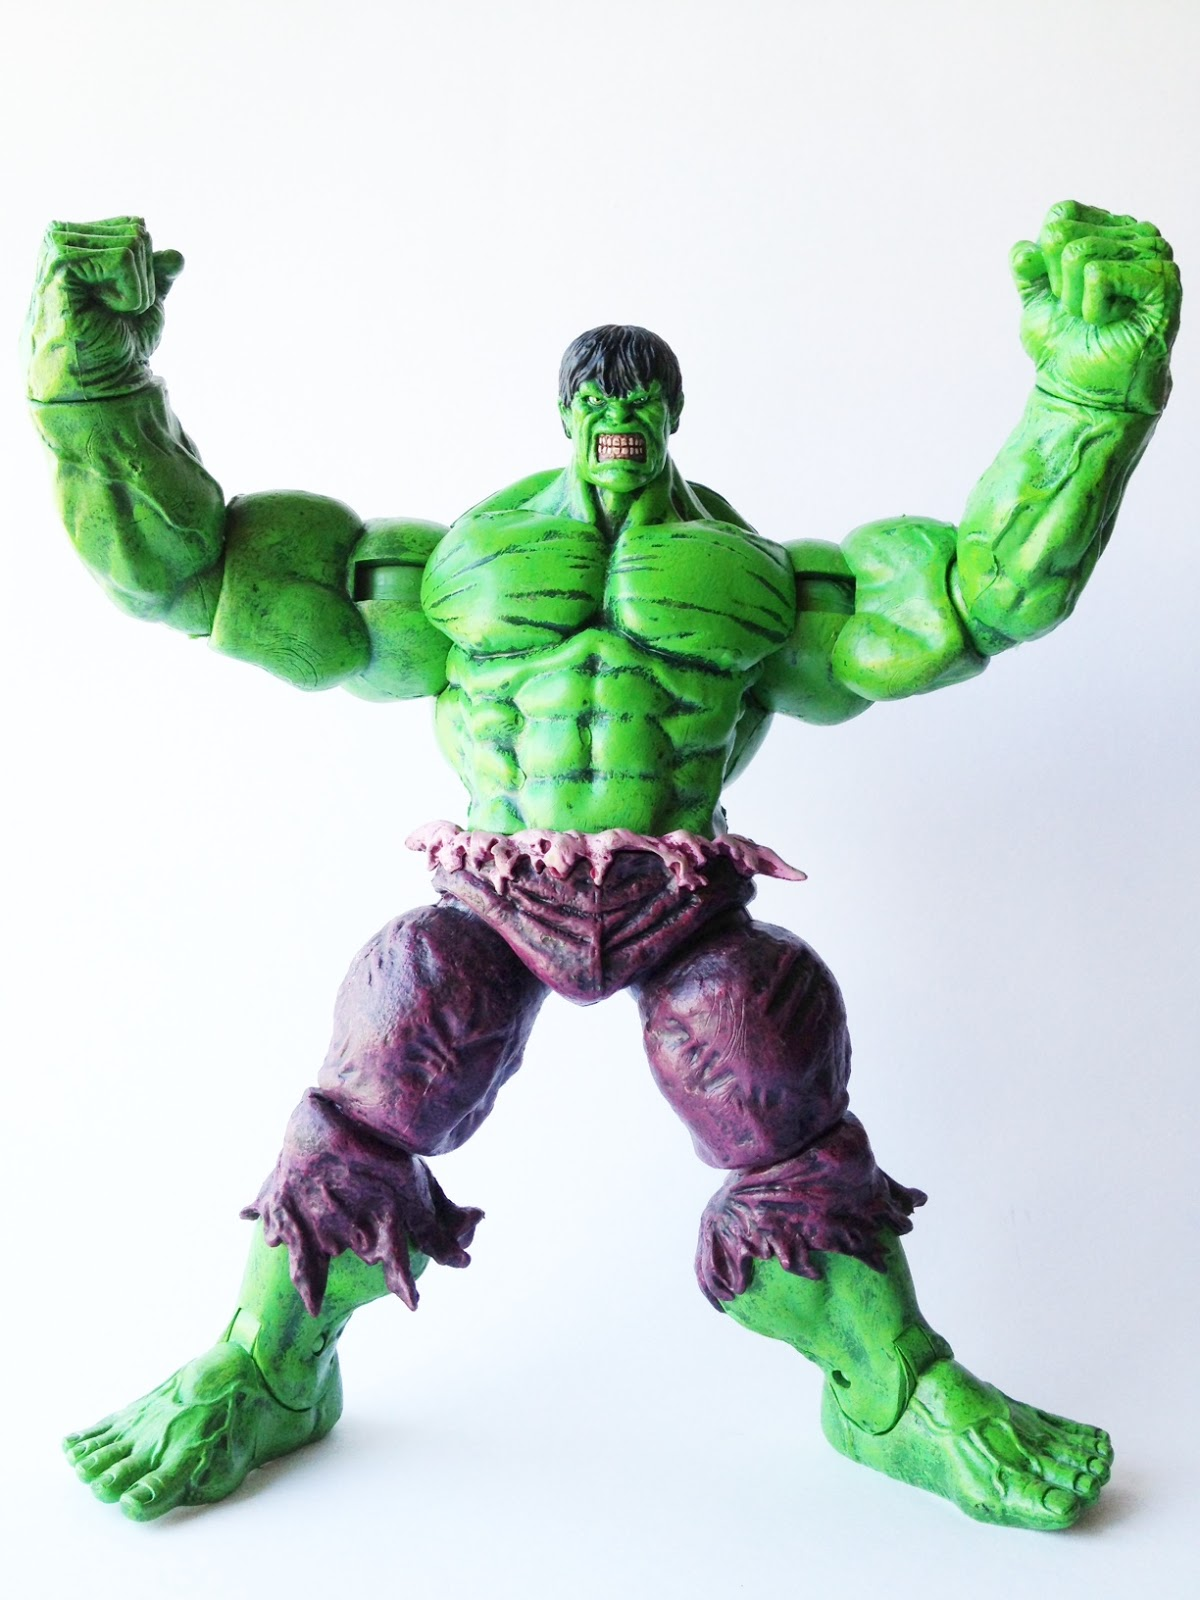 It's just a photo of Gorgeous Incredible Hulk Images